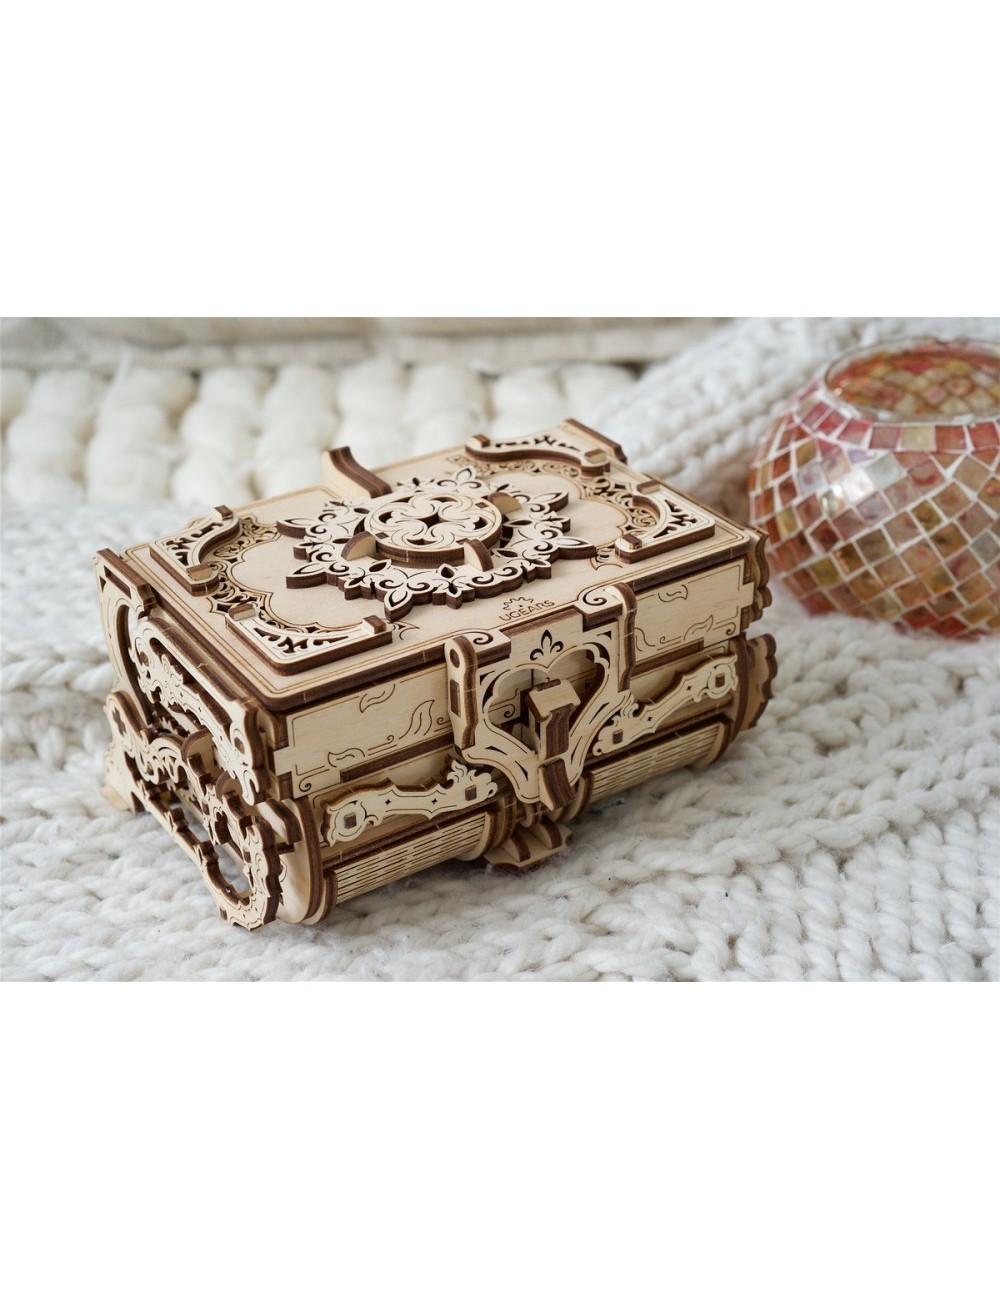 Joyero antiguo (Antique Box)